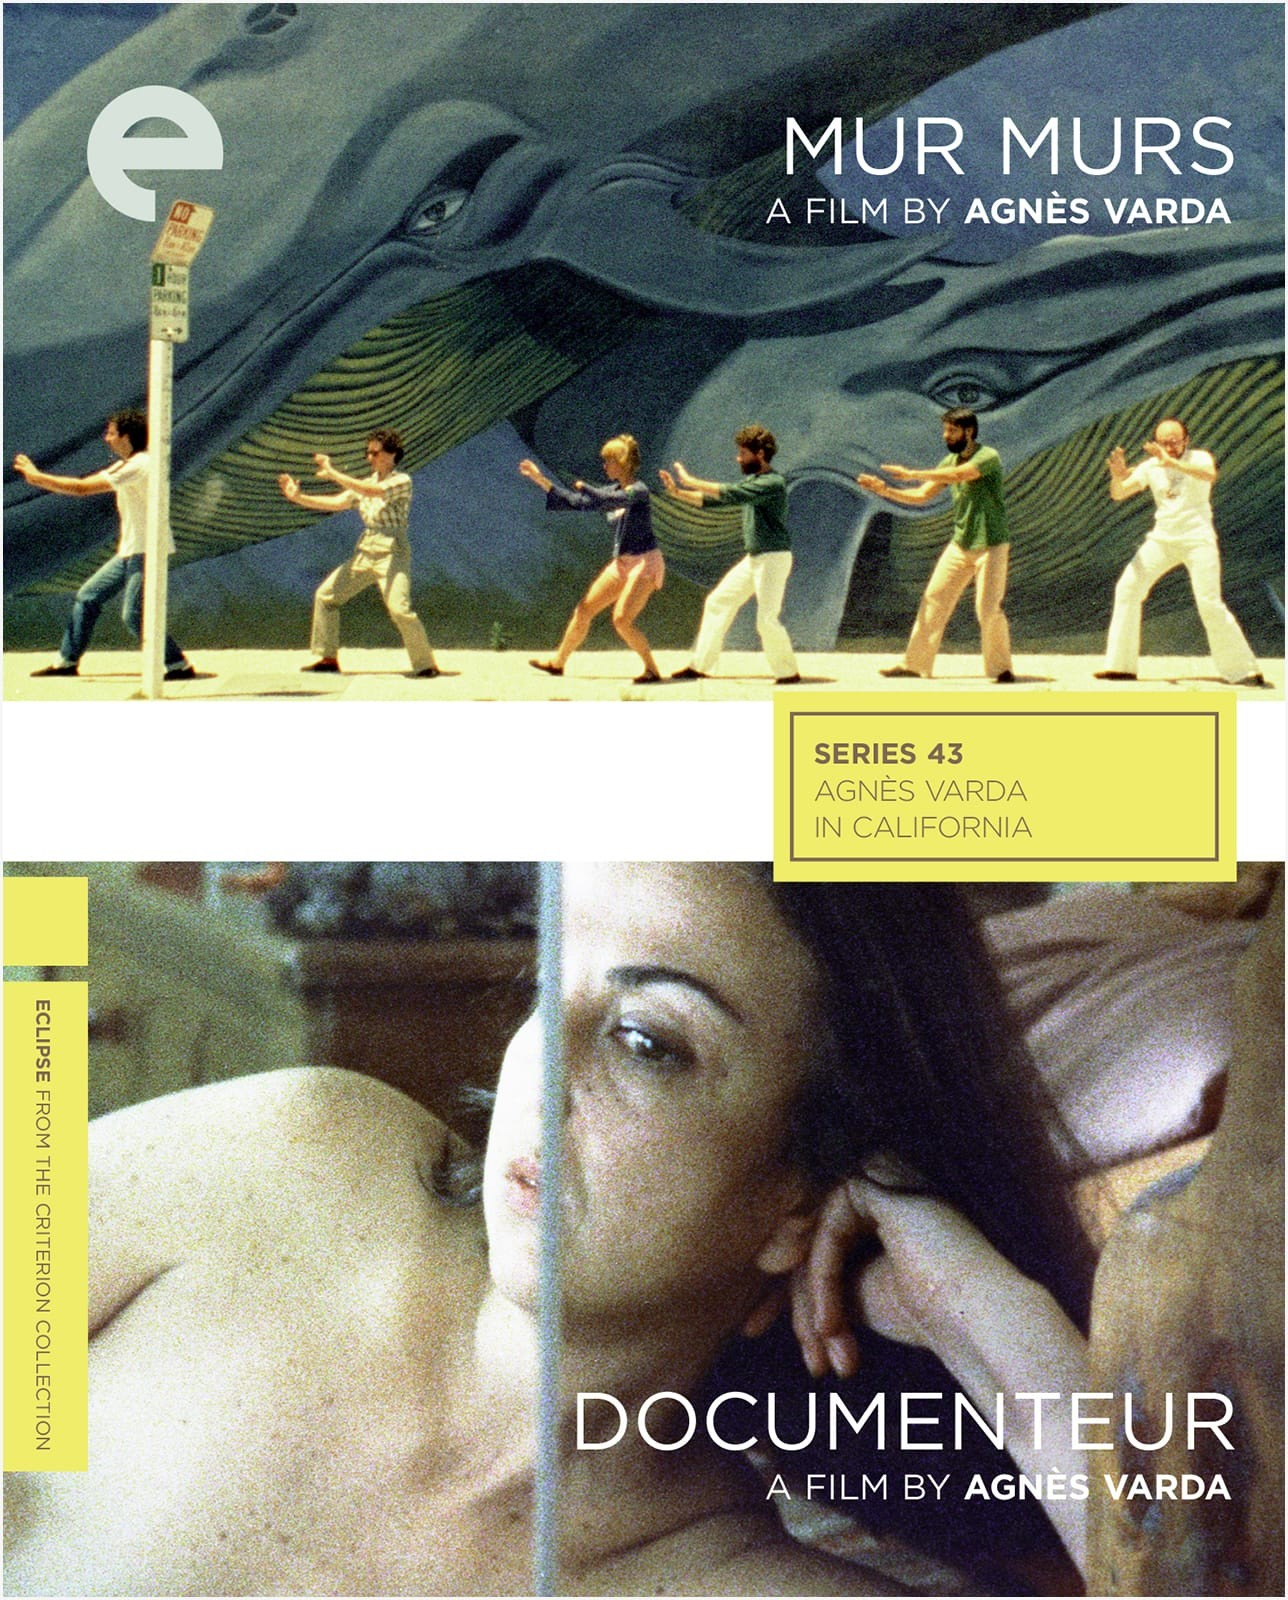 Documenteur